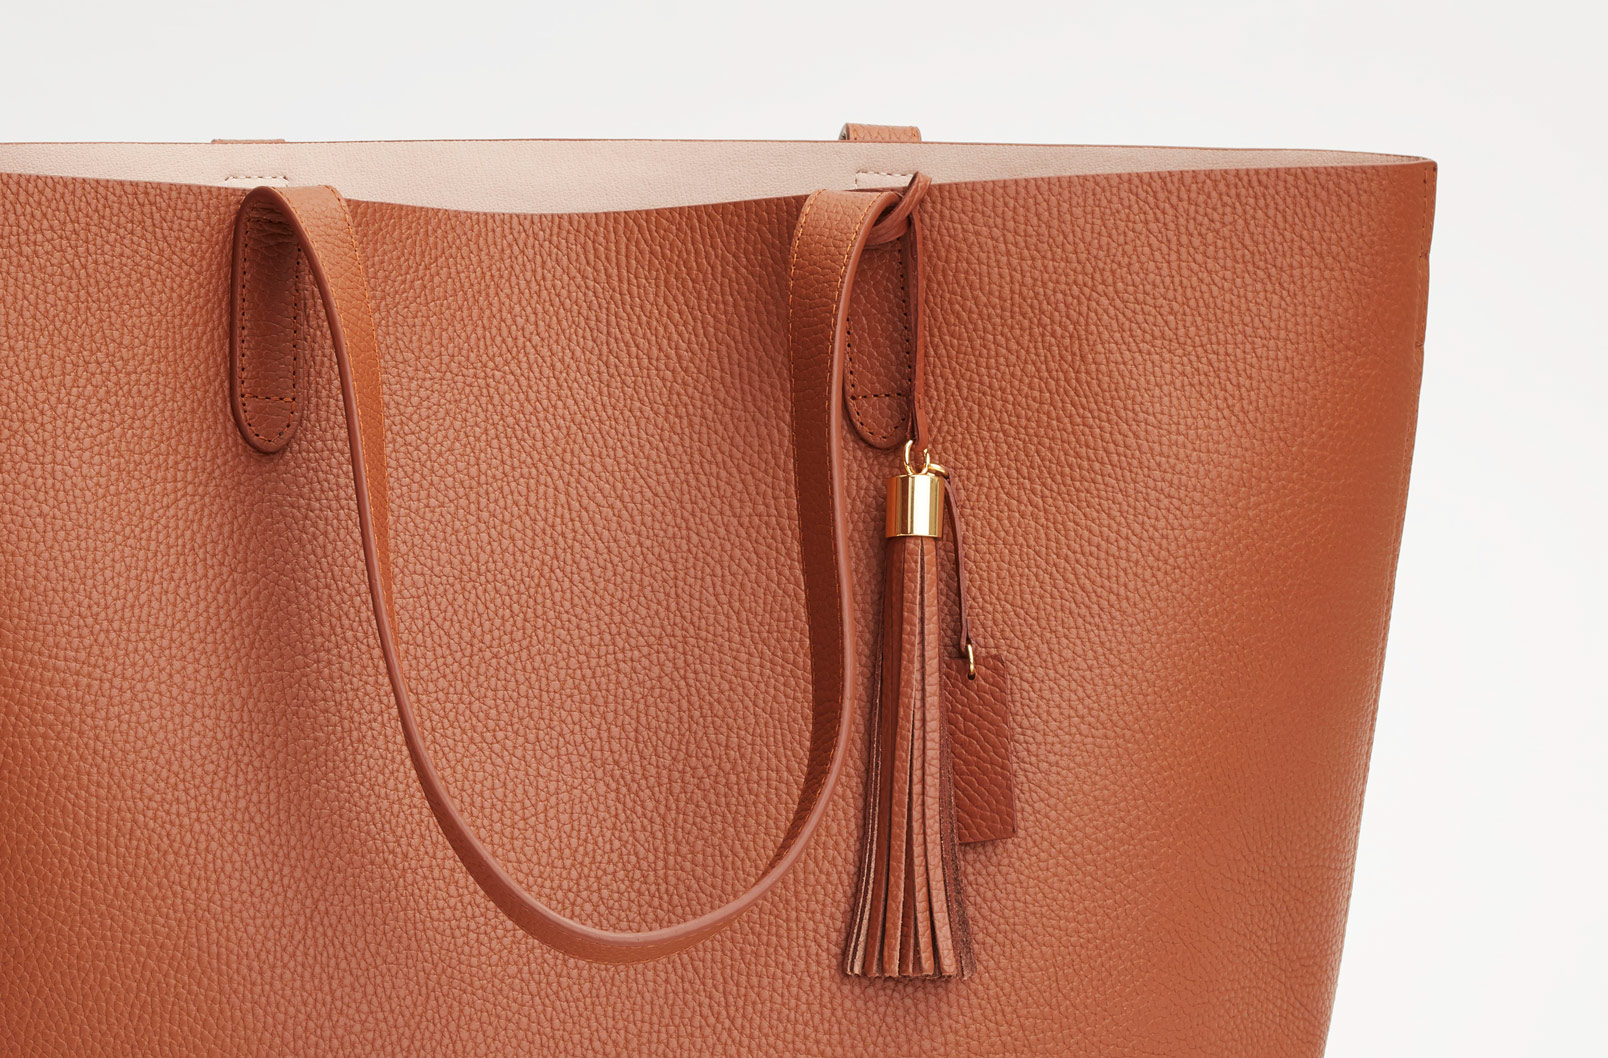 Cuyana Classic Structured Leather Tote with Leather Bag Tassel